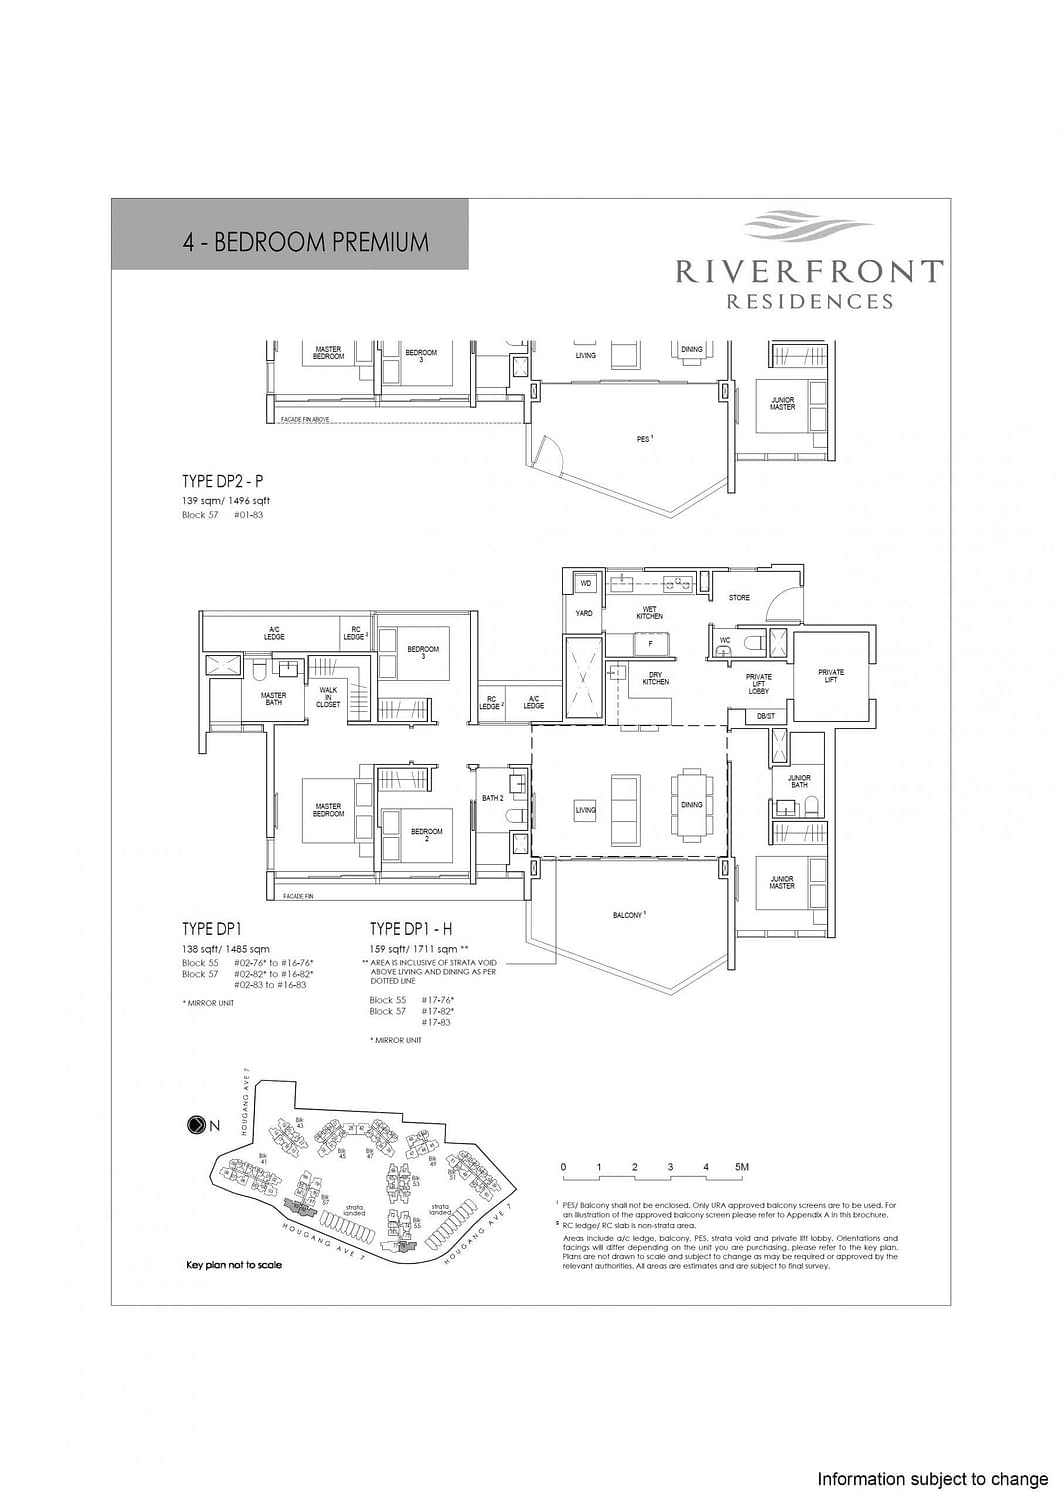 Riverfront Residences Riverfront Residences Floorplan DP1 H scaled